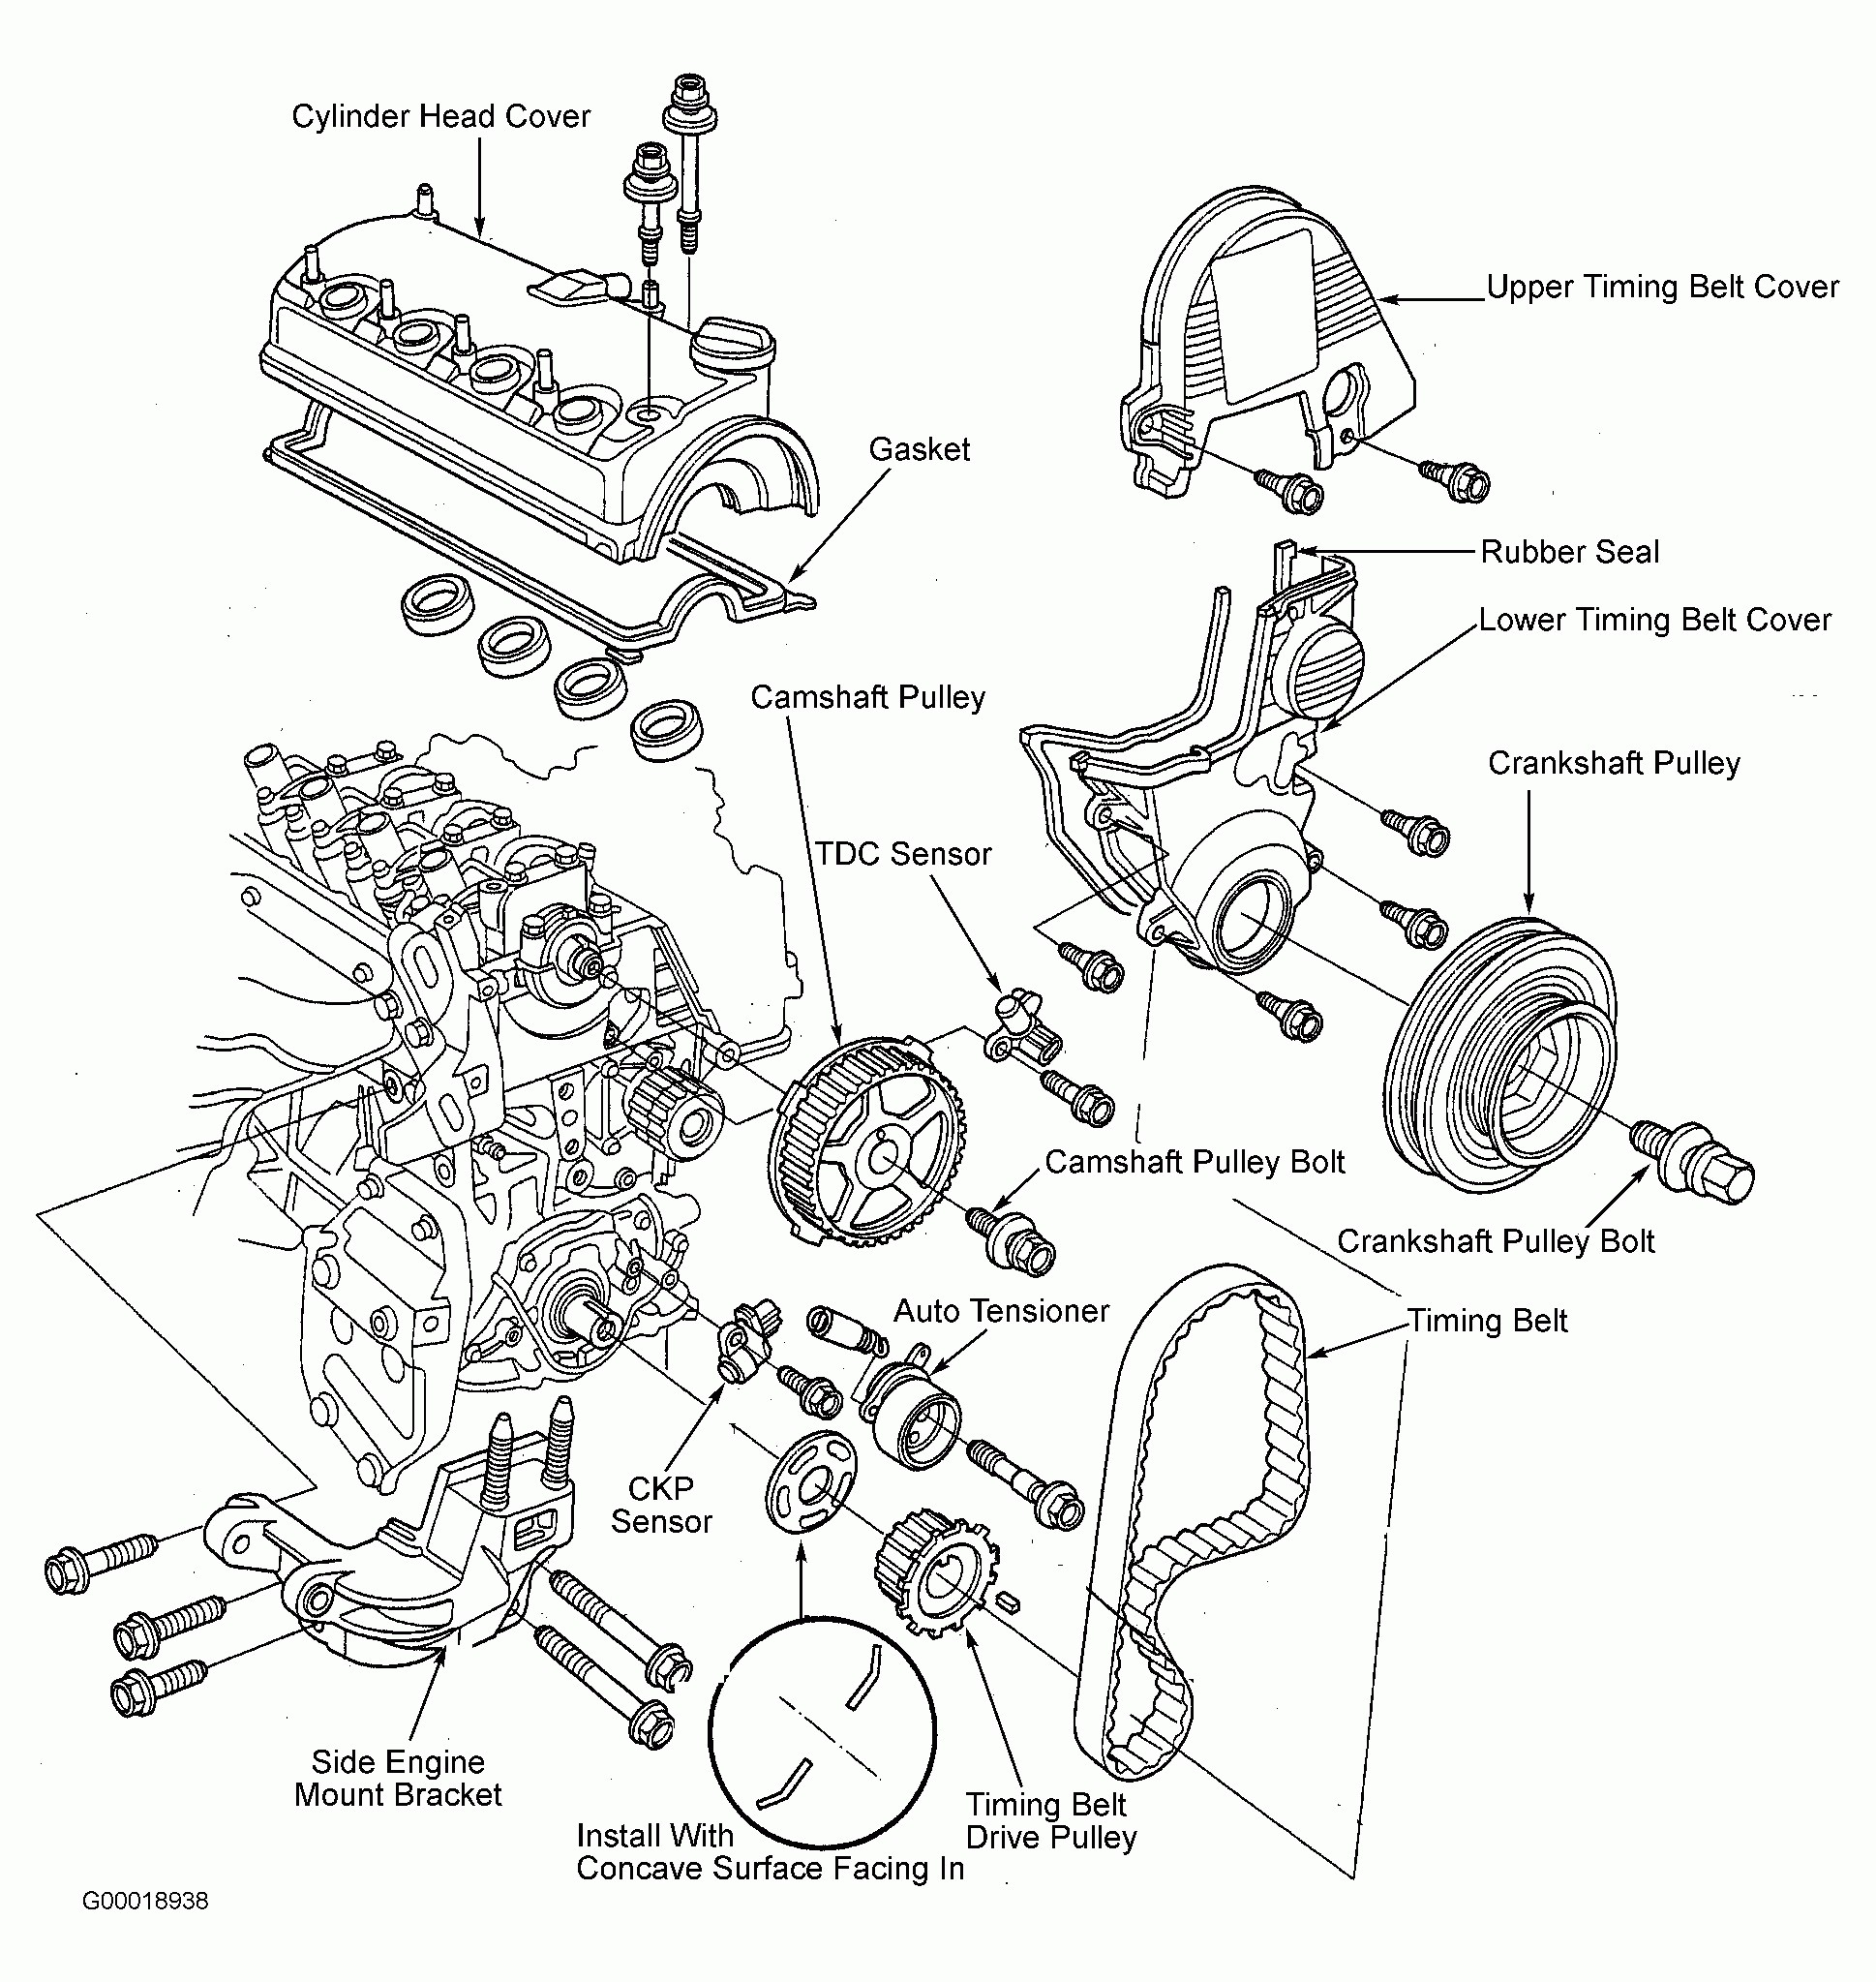 1998 Honda Civic Lx Engine Diagram Cool Review About 2003 Honda Civic Dx with Extraordinary Gallery Of 1998 Honda Civic Lx Engine Diagram